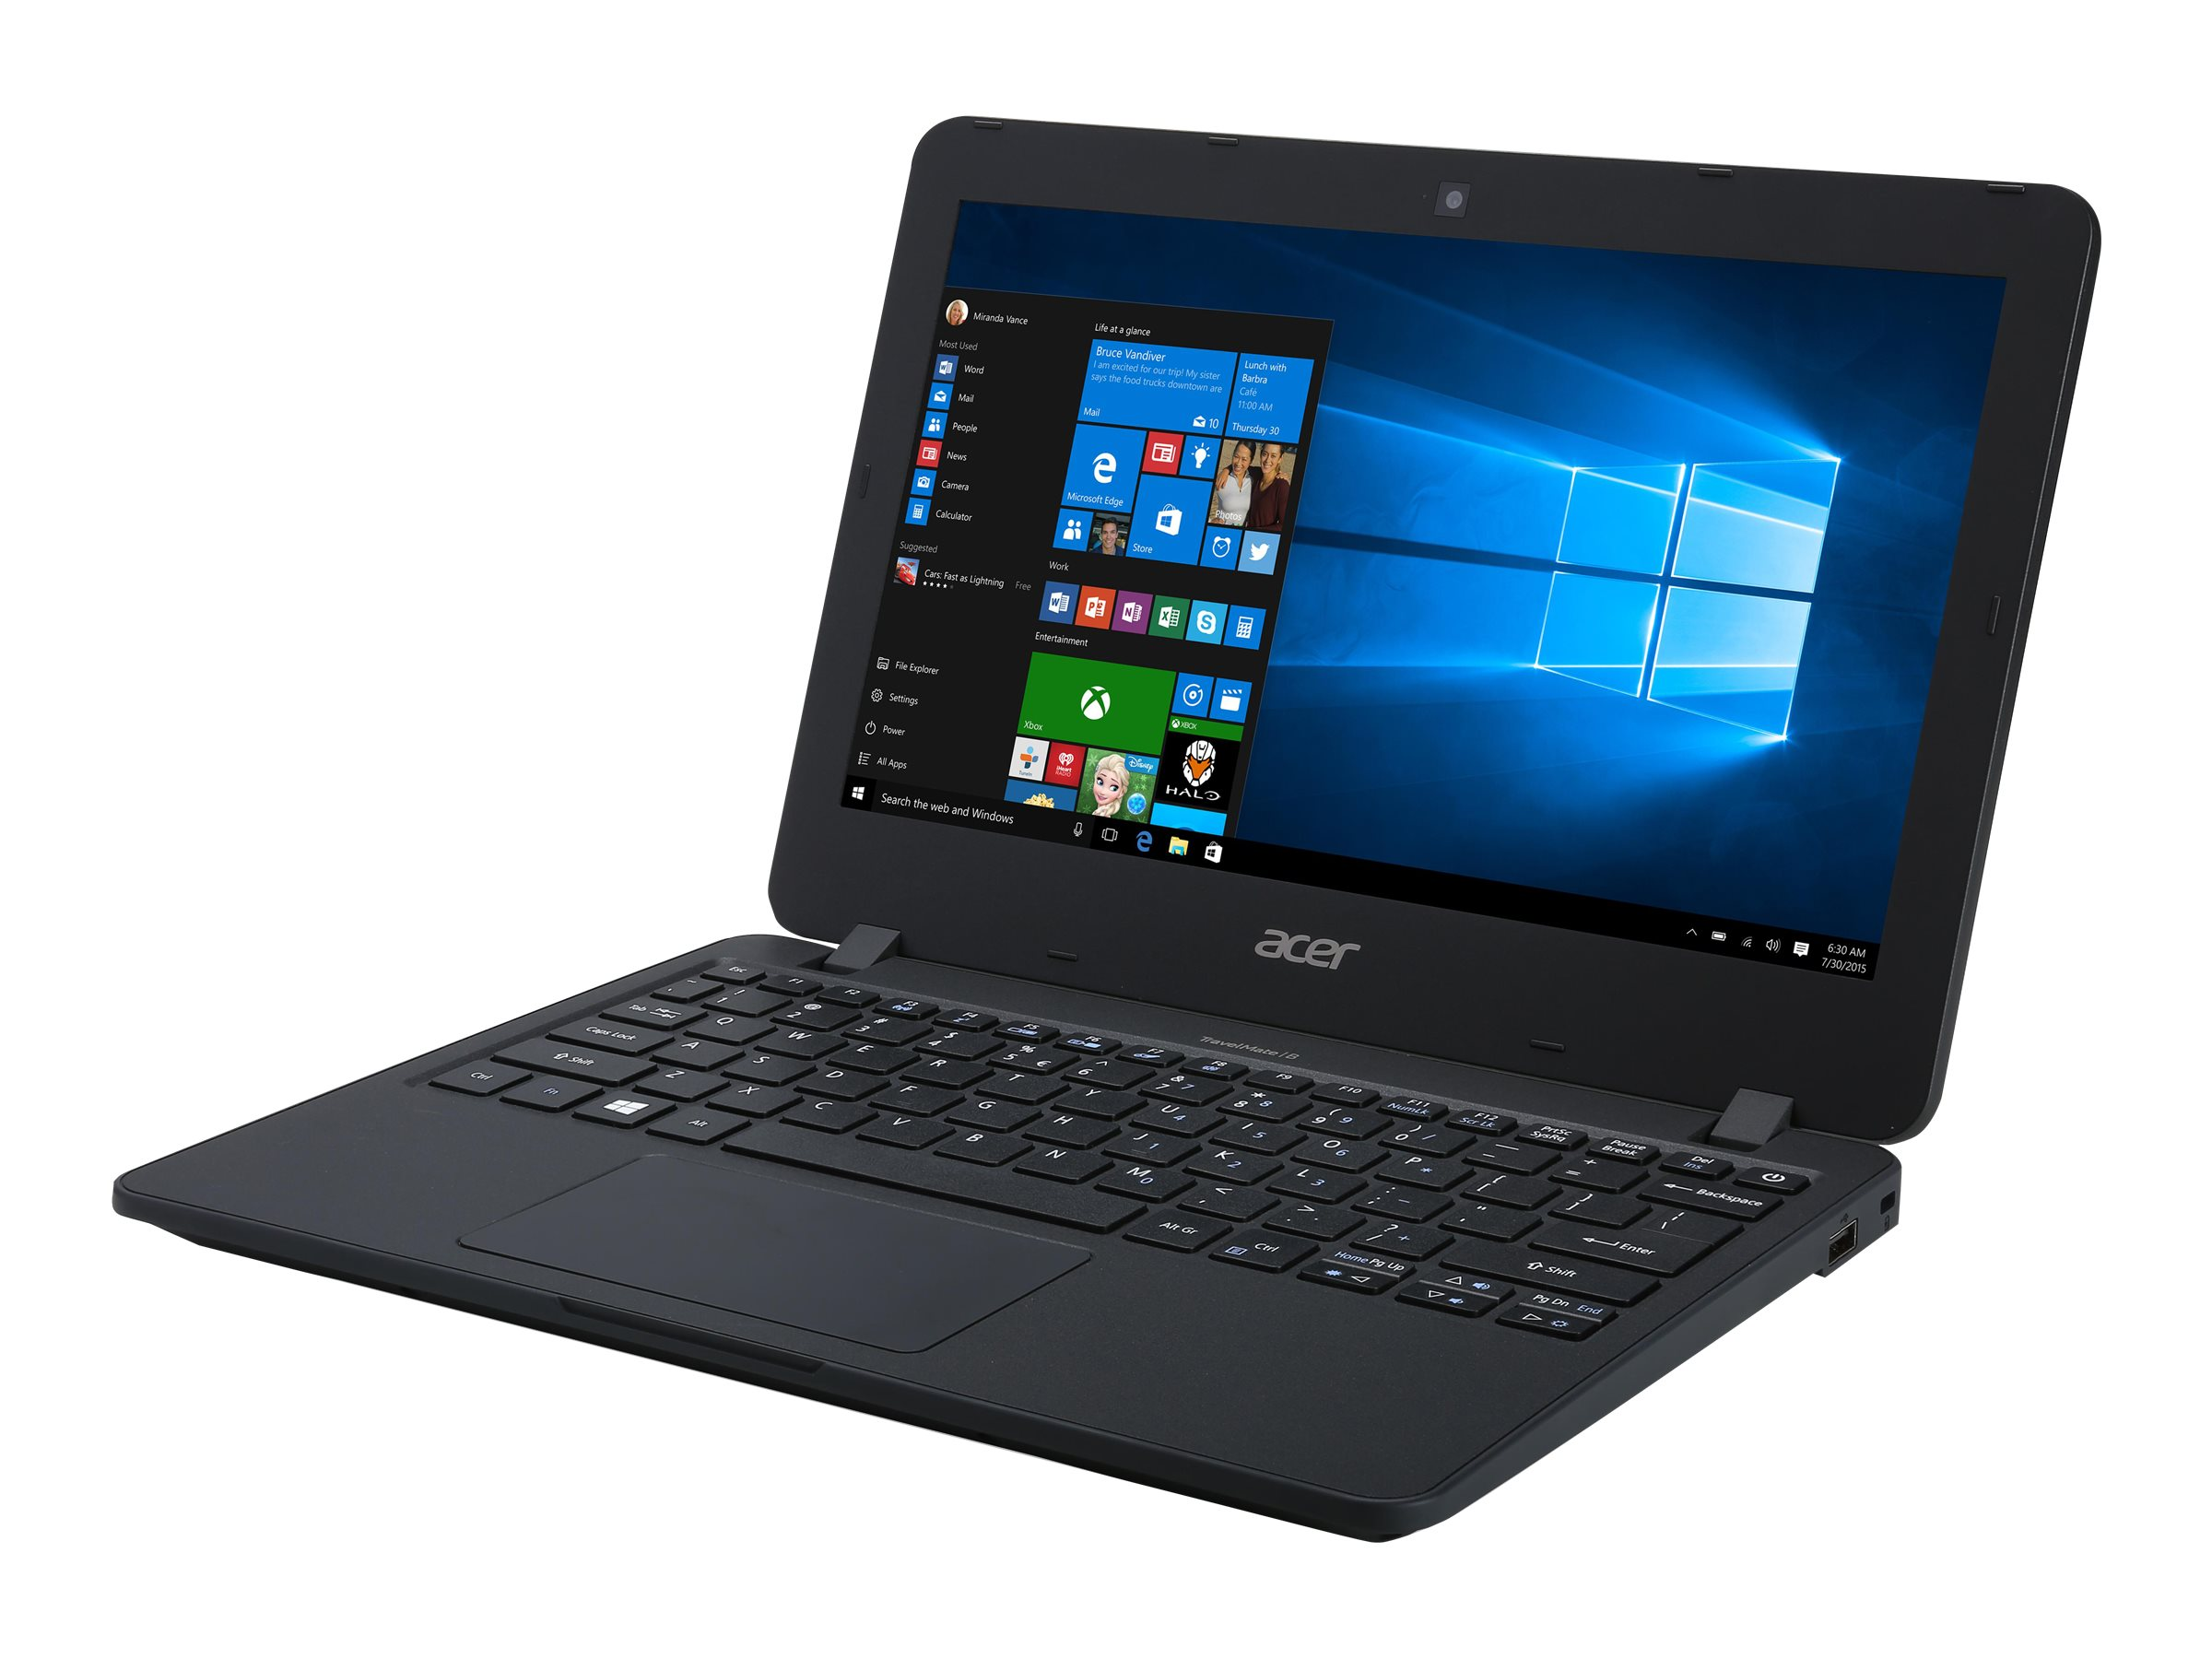 Acer TravelMate B117-M-C37N 1.6GHz Celeron 11.6in display